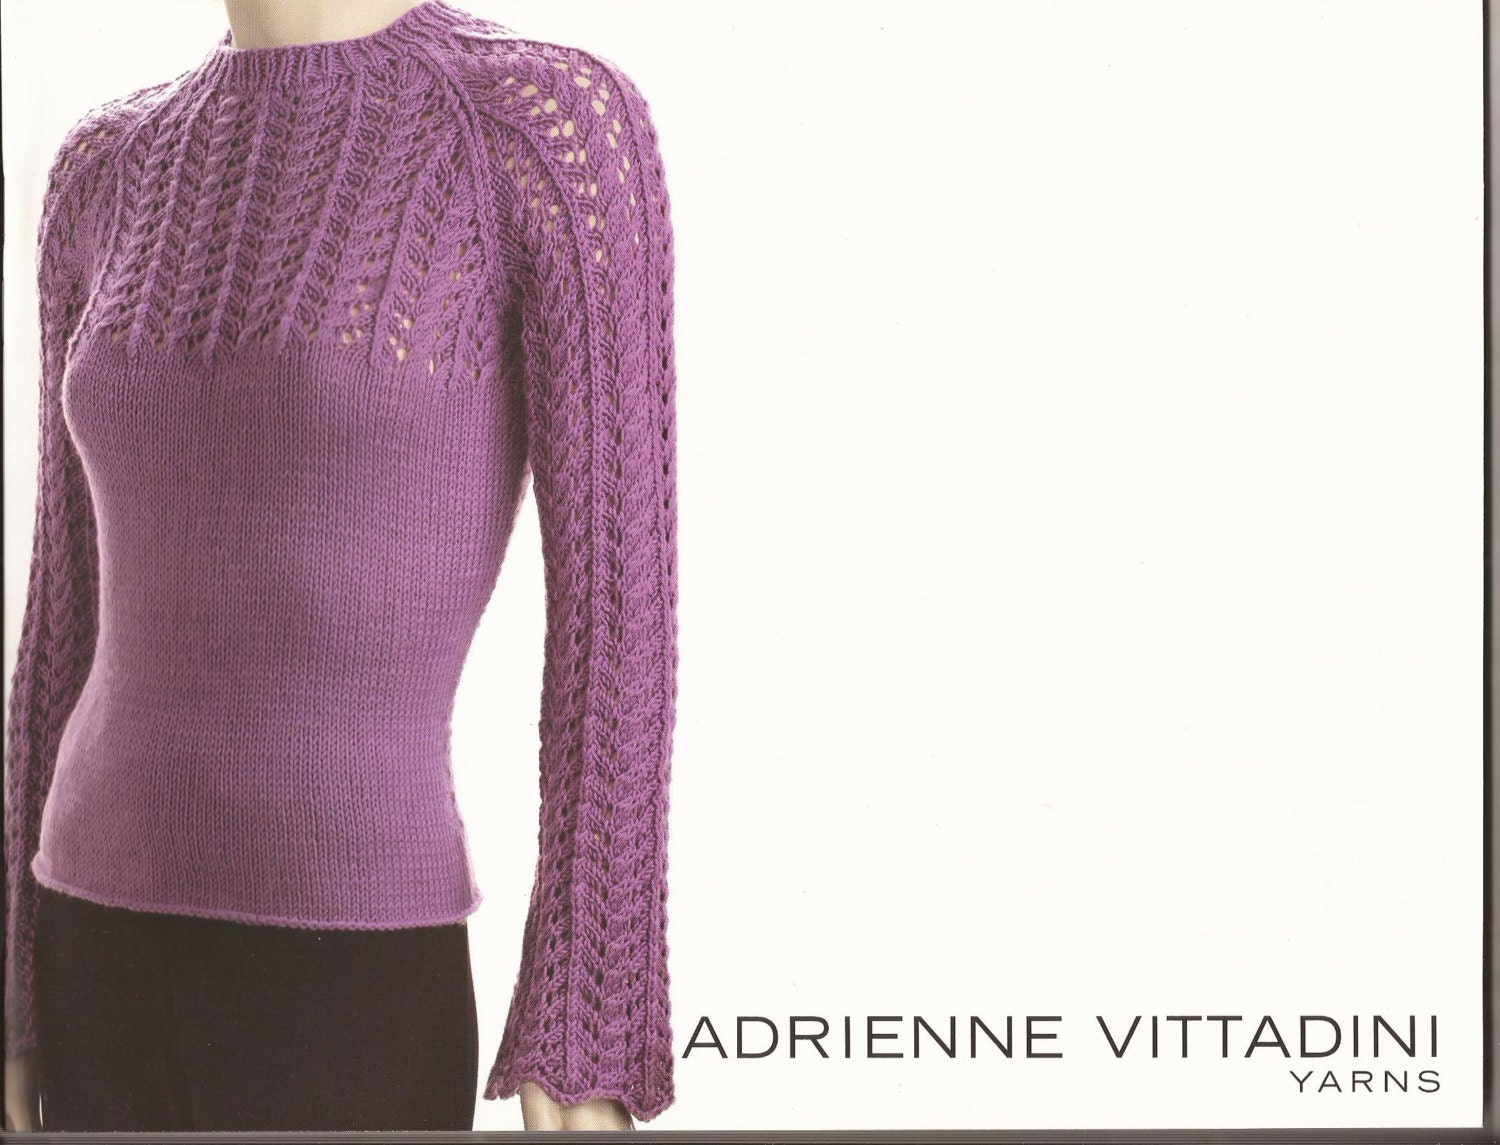 Adrienne Vittadini Knitting Pattern Books : Adrienne Vittadini Knitting Pattern Book vol 24 Pullovers